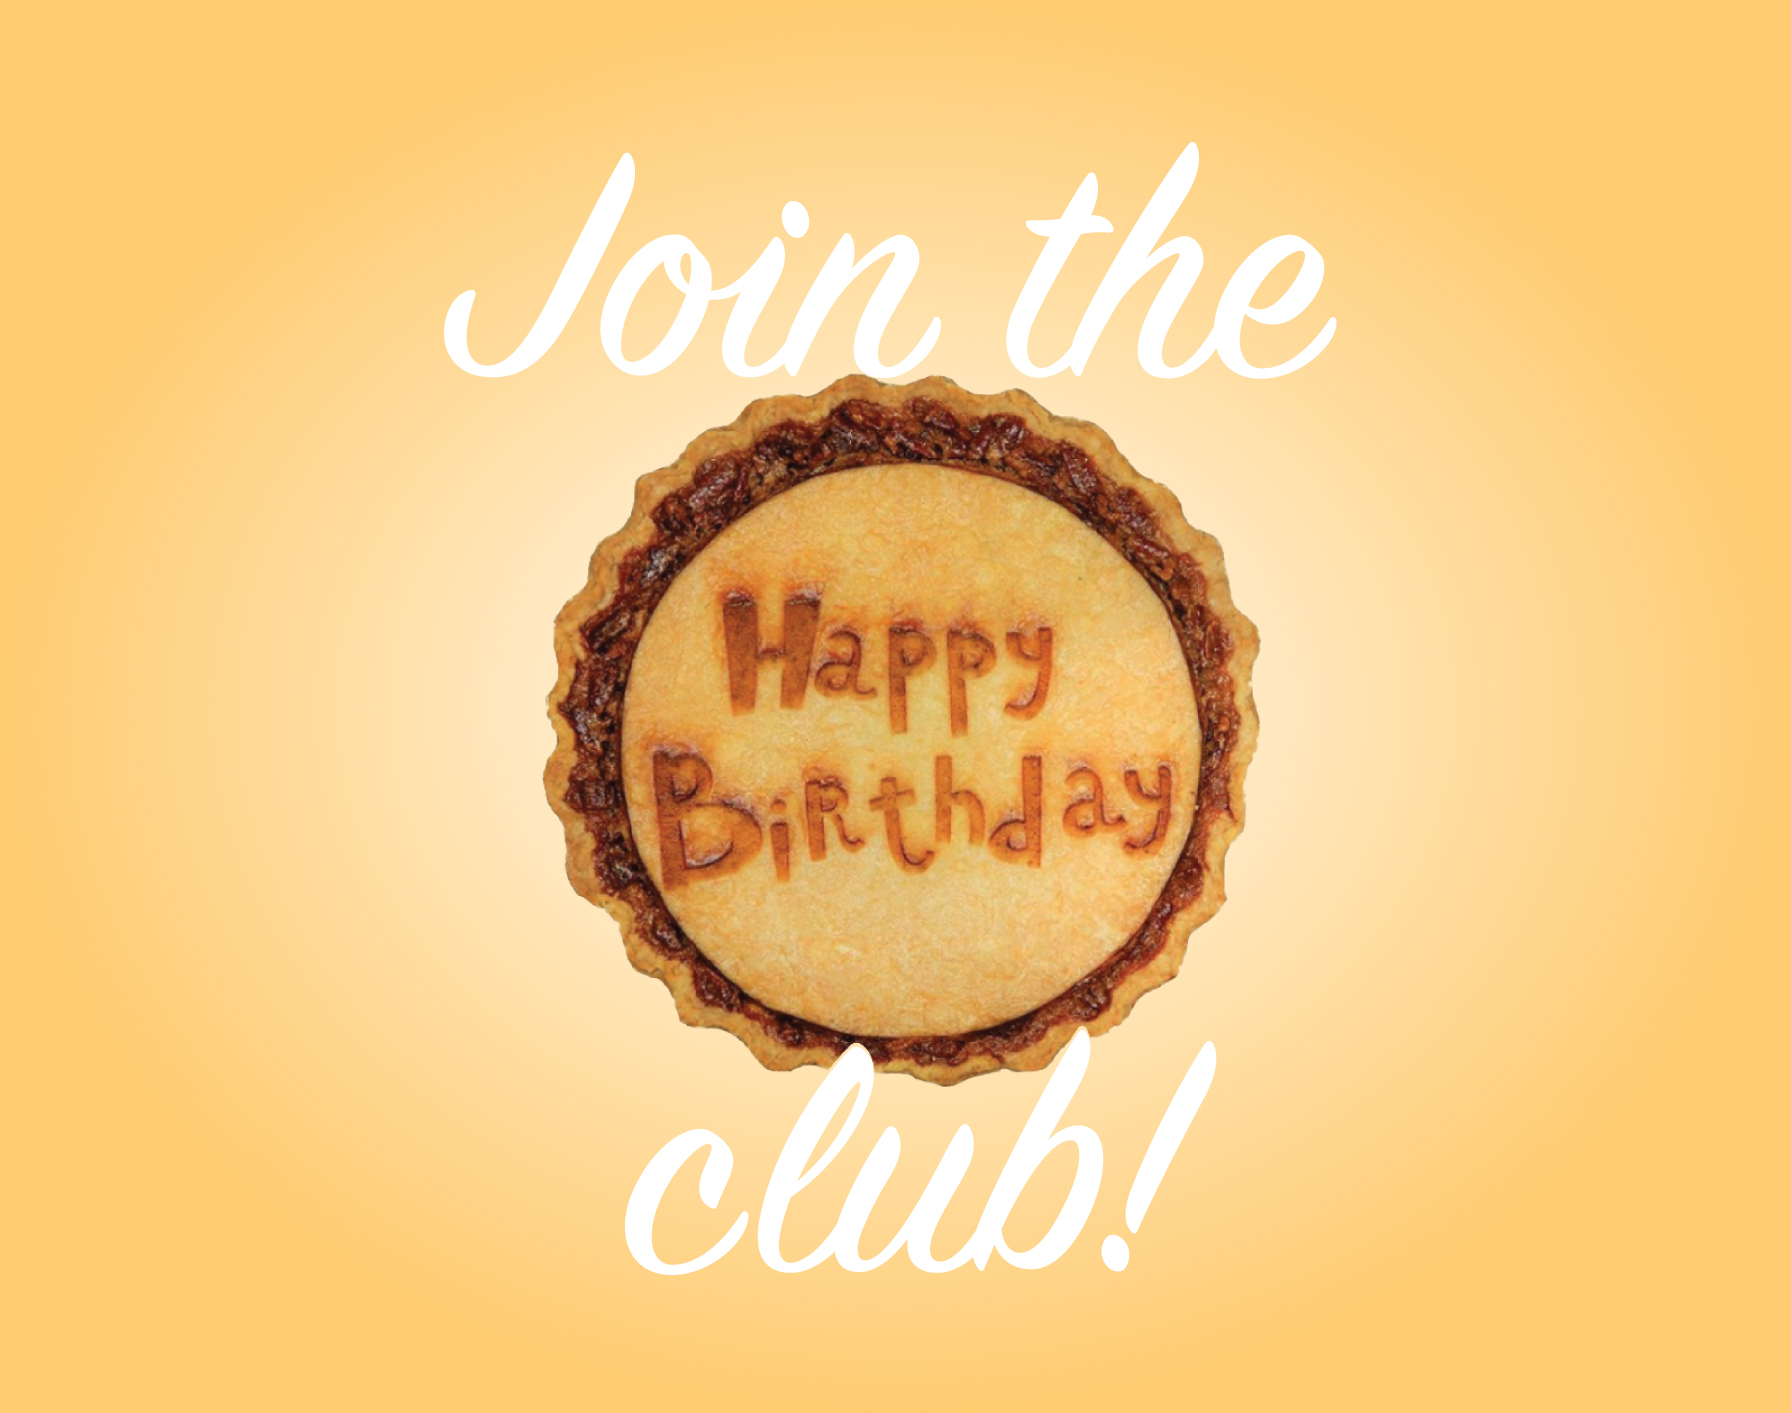 Birthday Club front-1.jpg